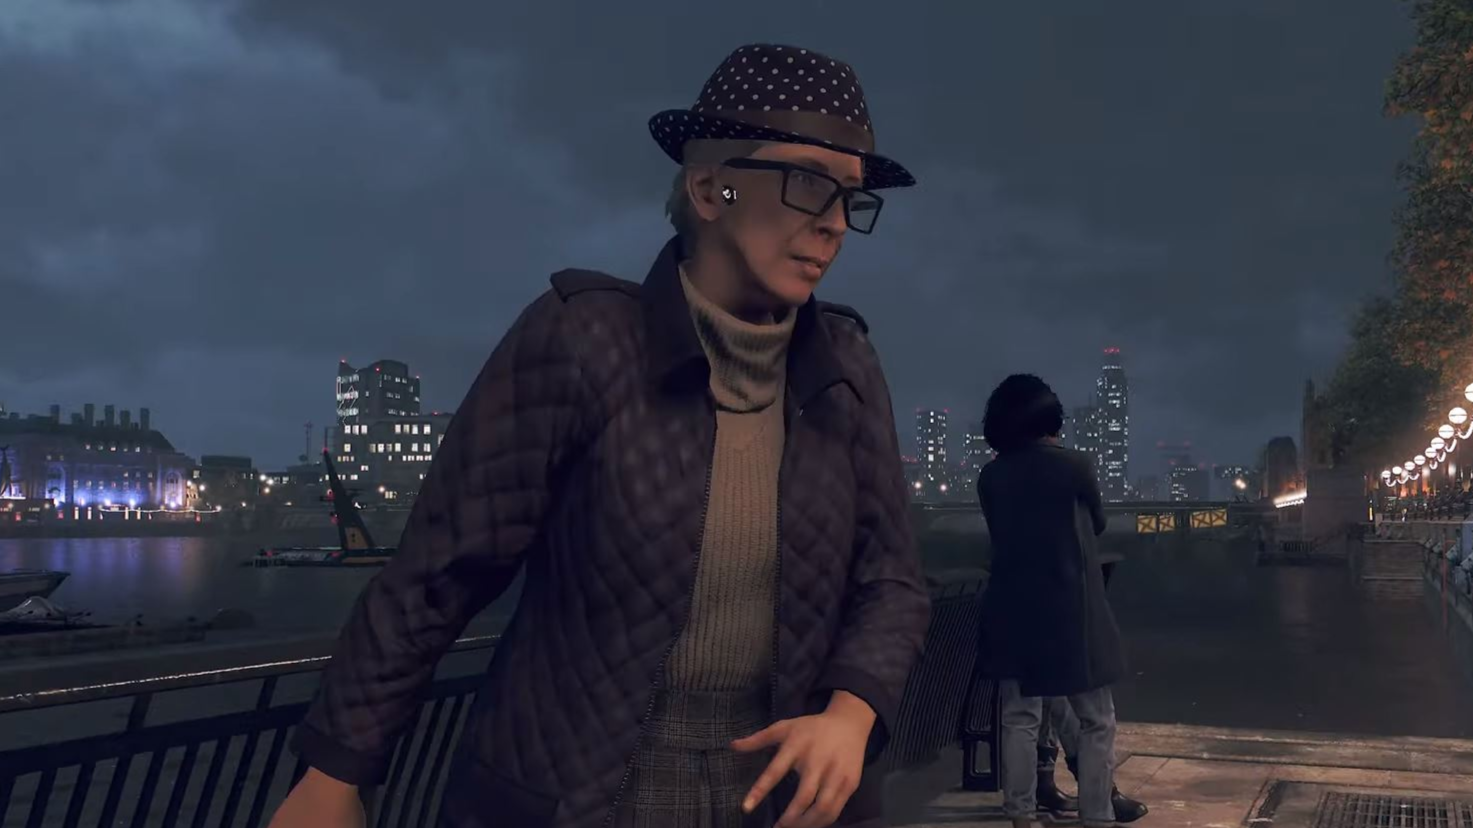 Watch Dogs Legion lets you recruit anyone into your gang